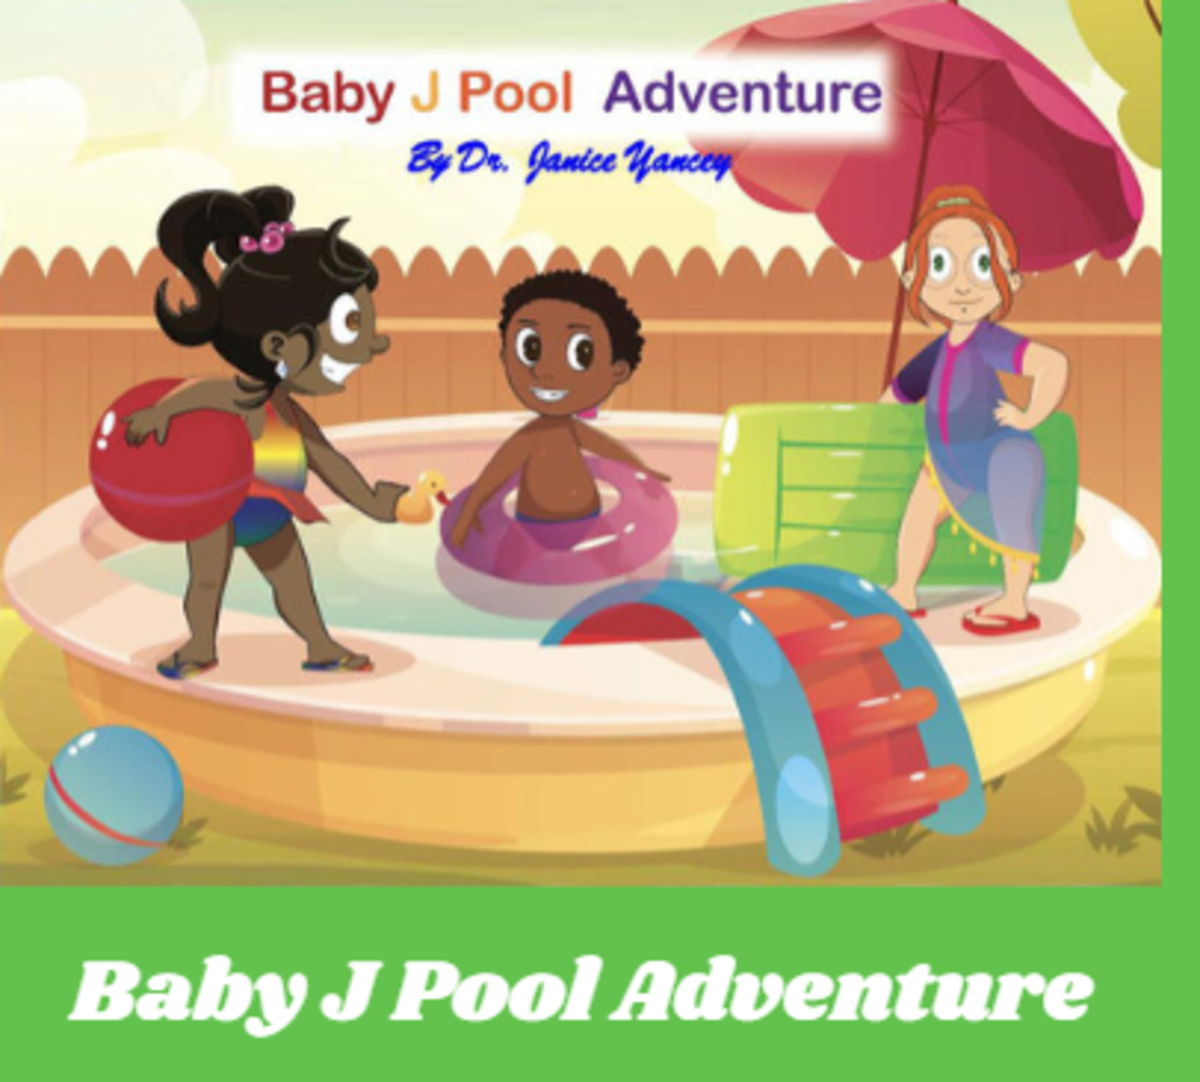 Baby J and Betty are at the pool with Matt. Betty displays low self-esteem. Baby J reminds Betty how deserving she is of love and respect.